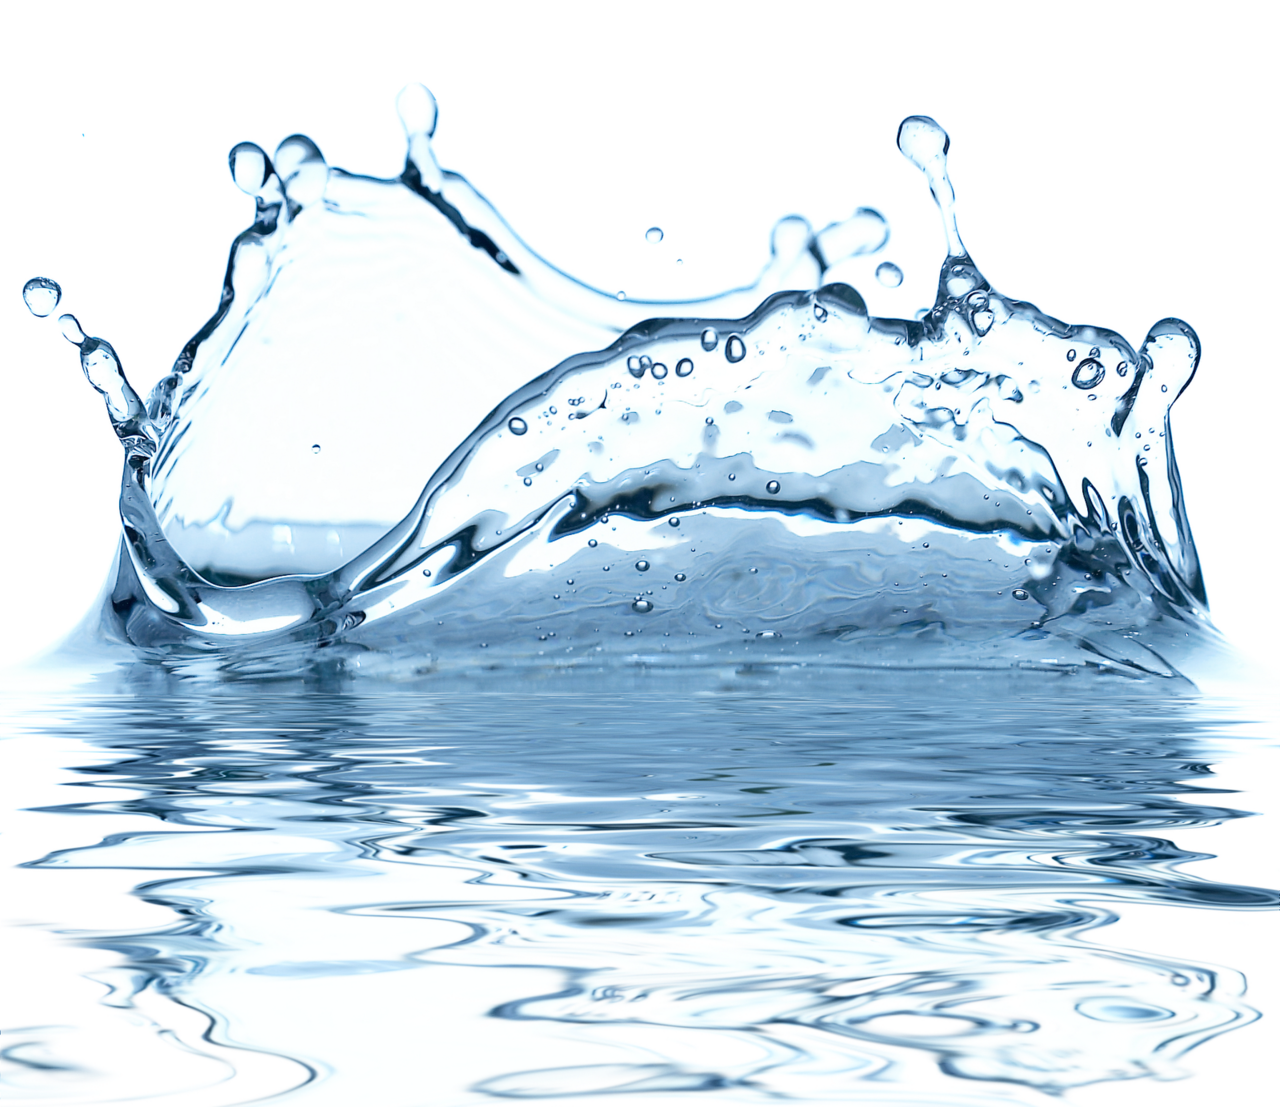 Water Splashes High Res PNG By Opendimension On DeviantART image #763